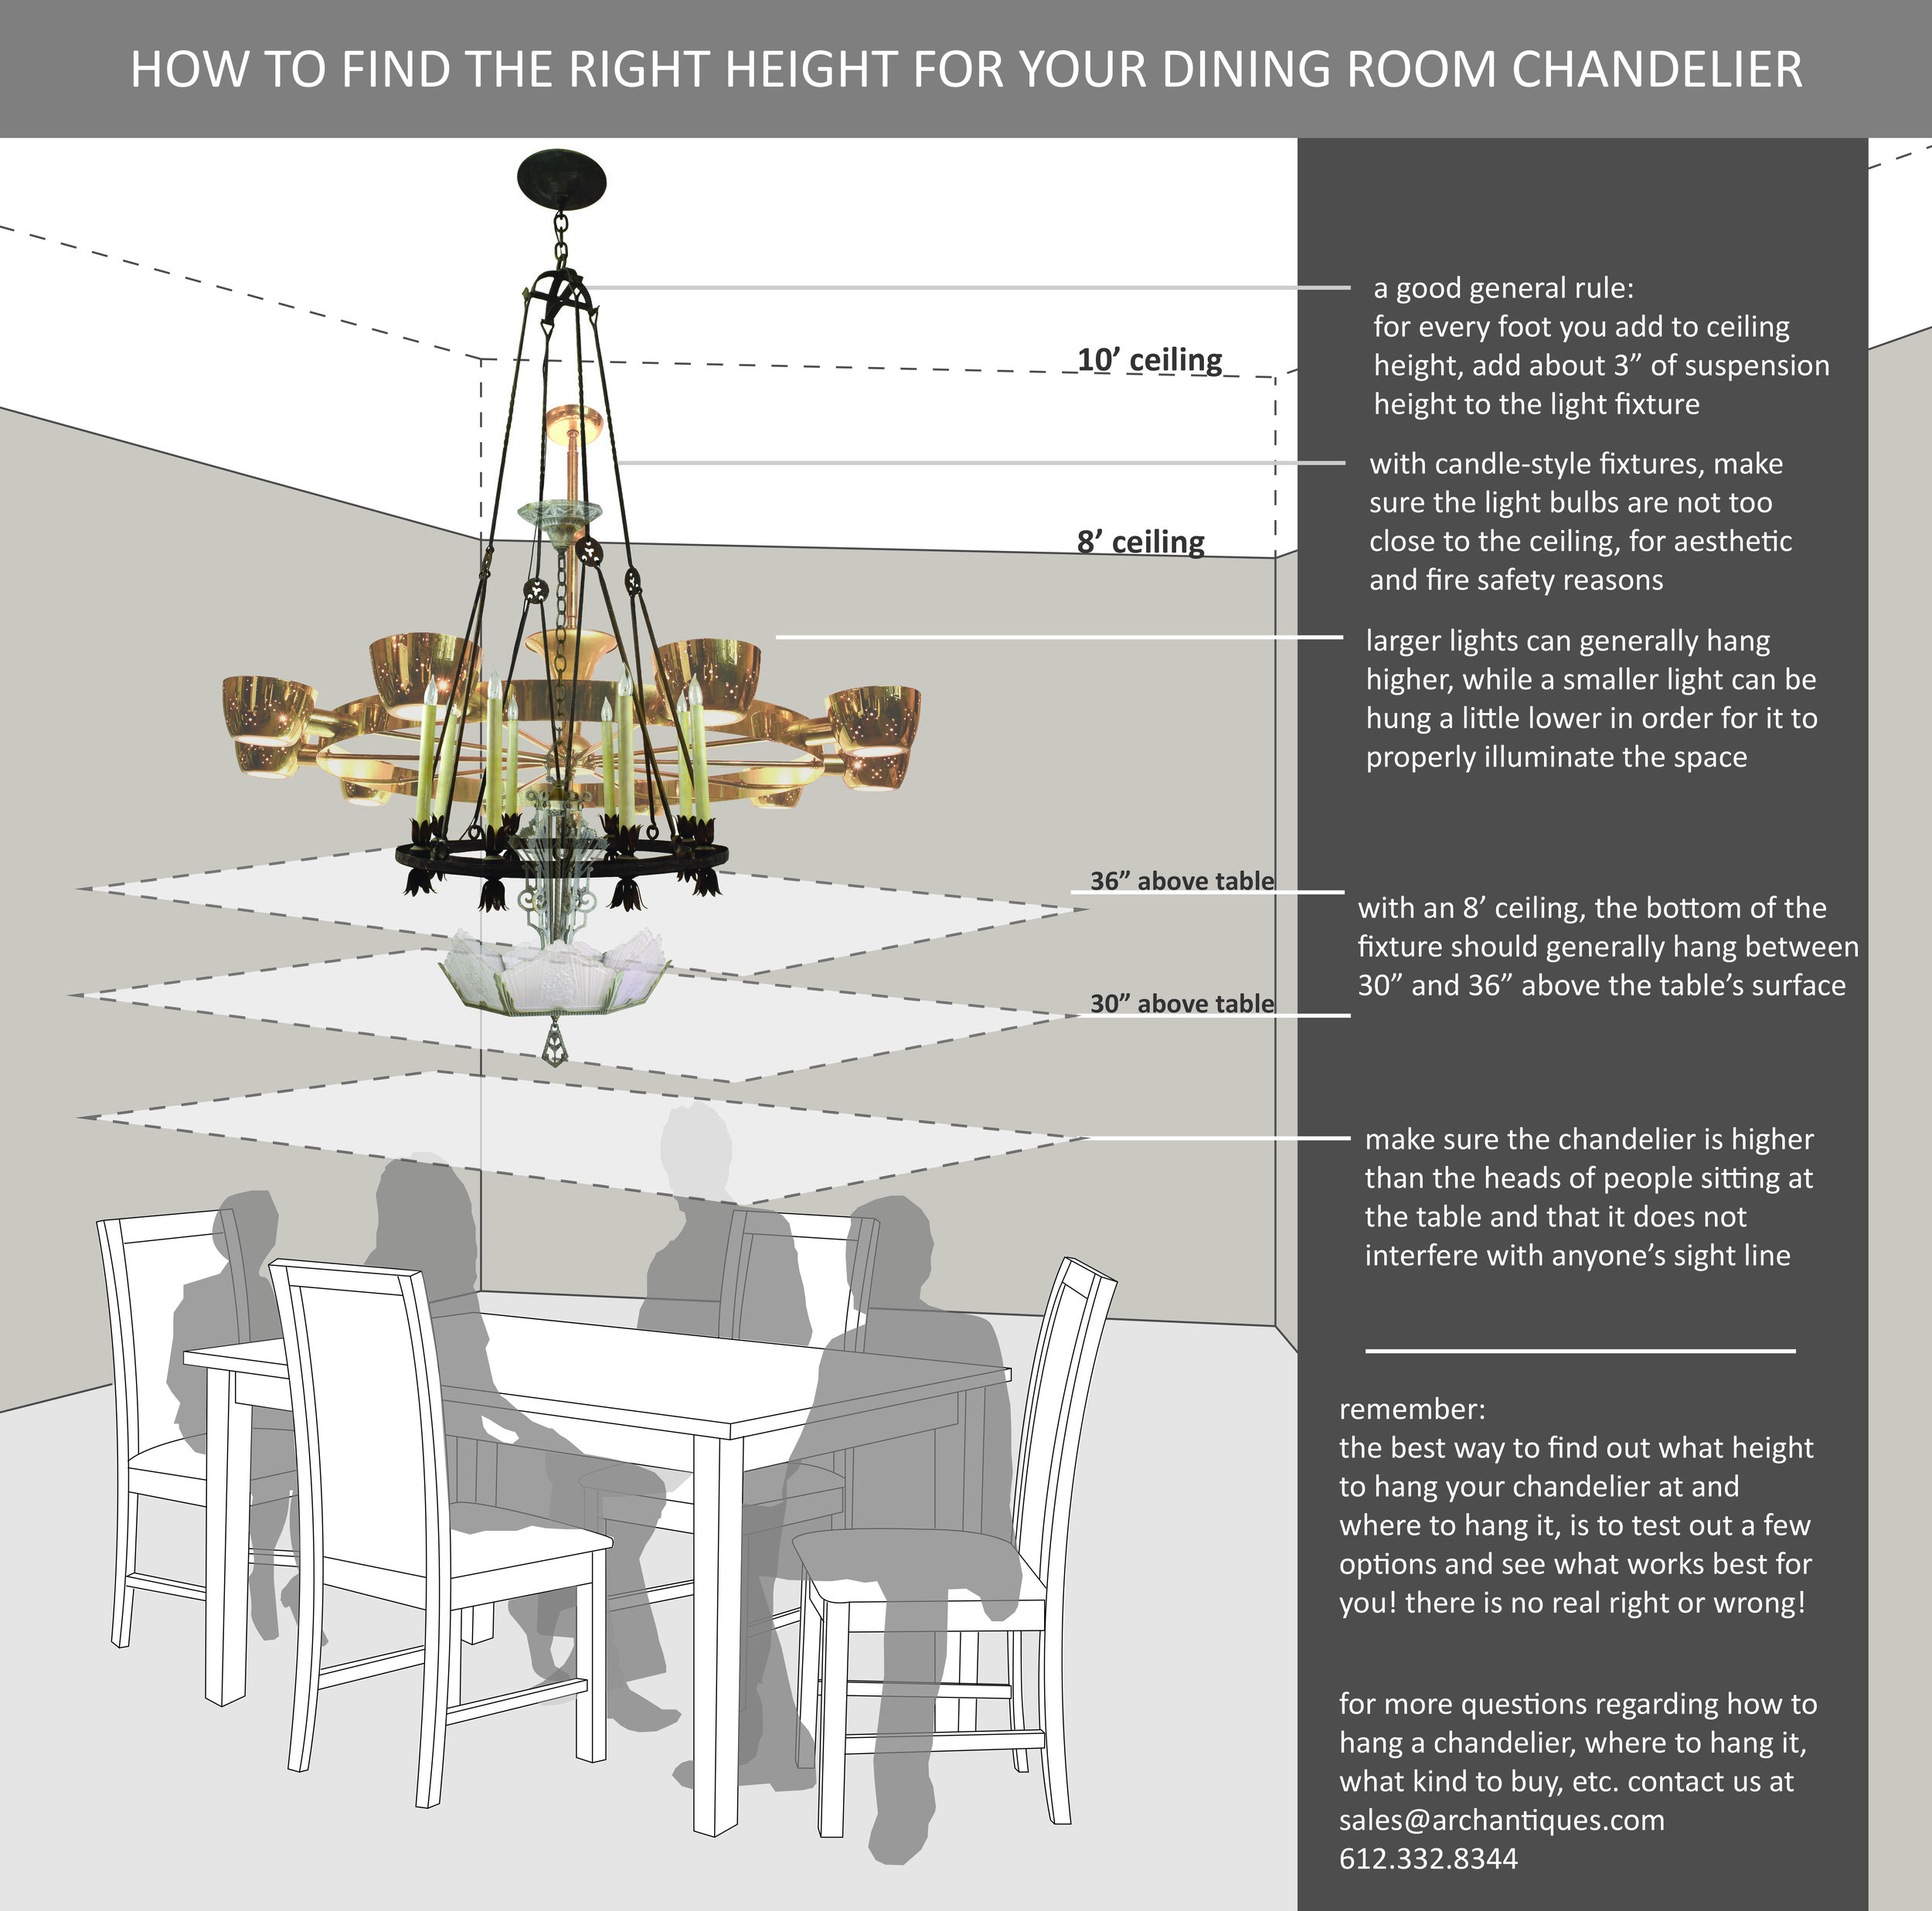 How To Find The Right Hanging Height For Your Chandelier